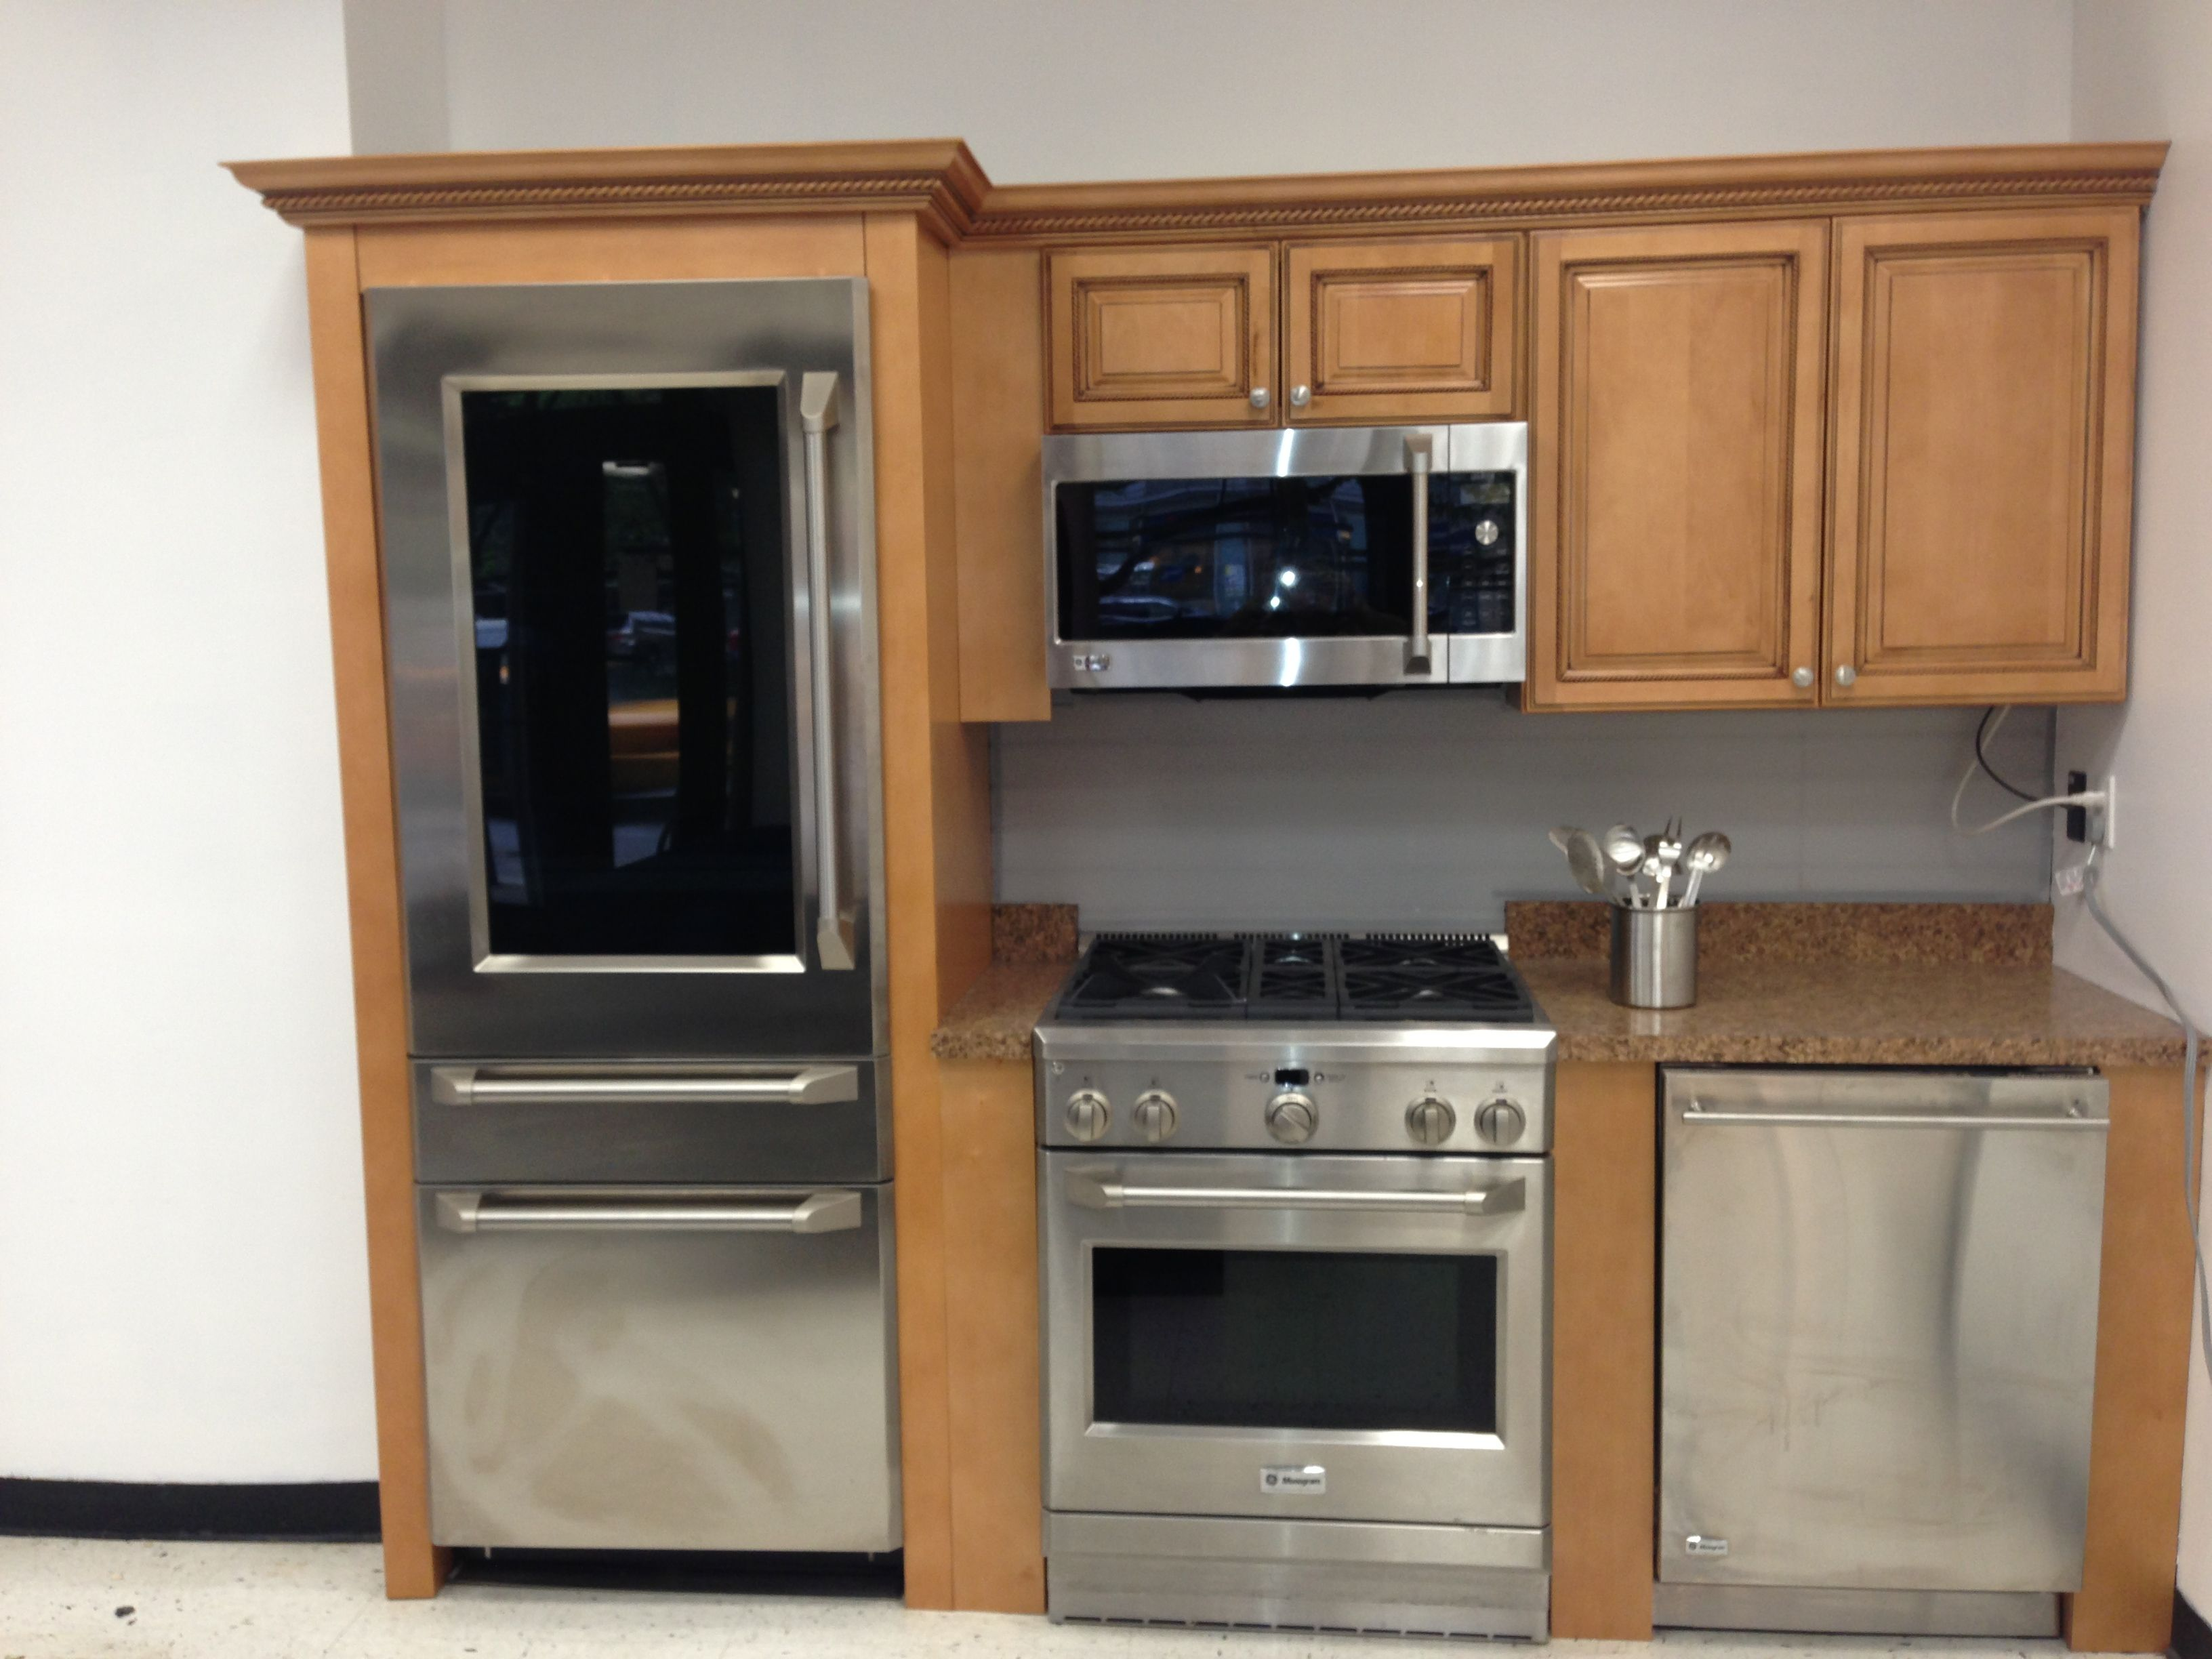 refrigerator for small kitchen trash compactor great appliances a renovation